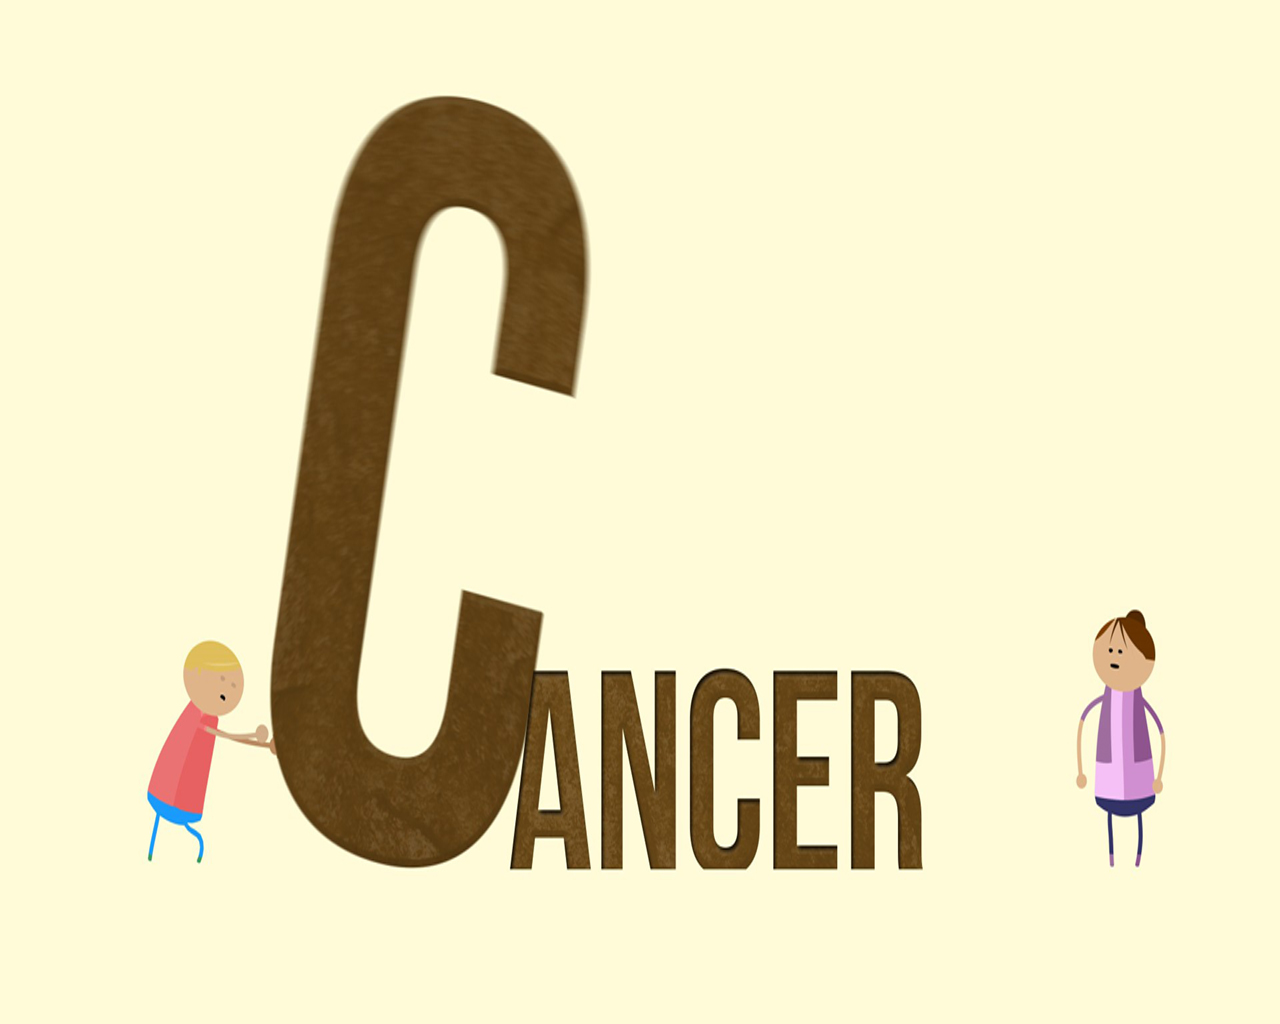 pic of the word cancer